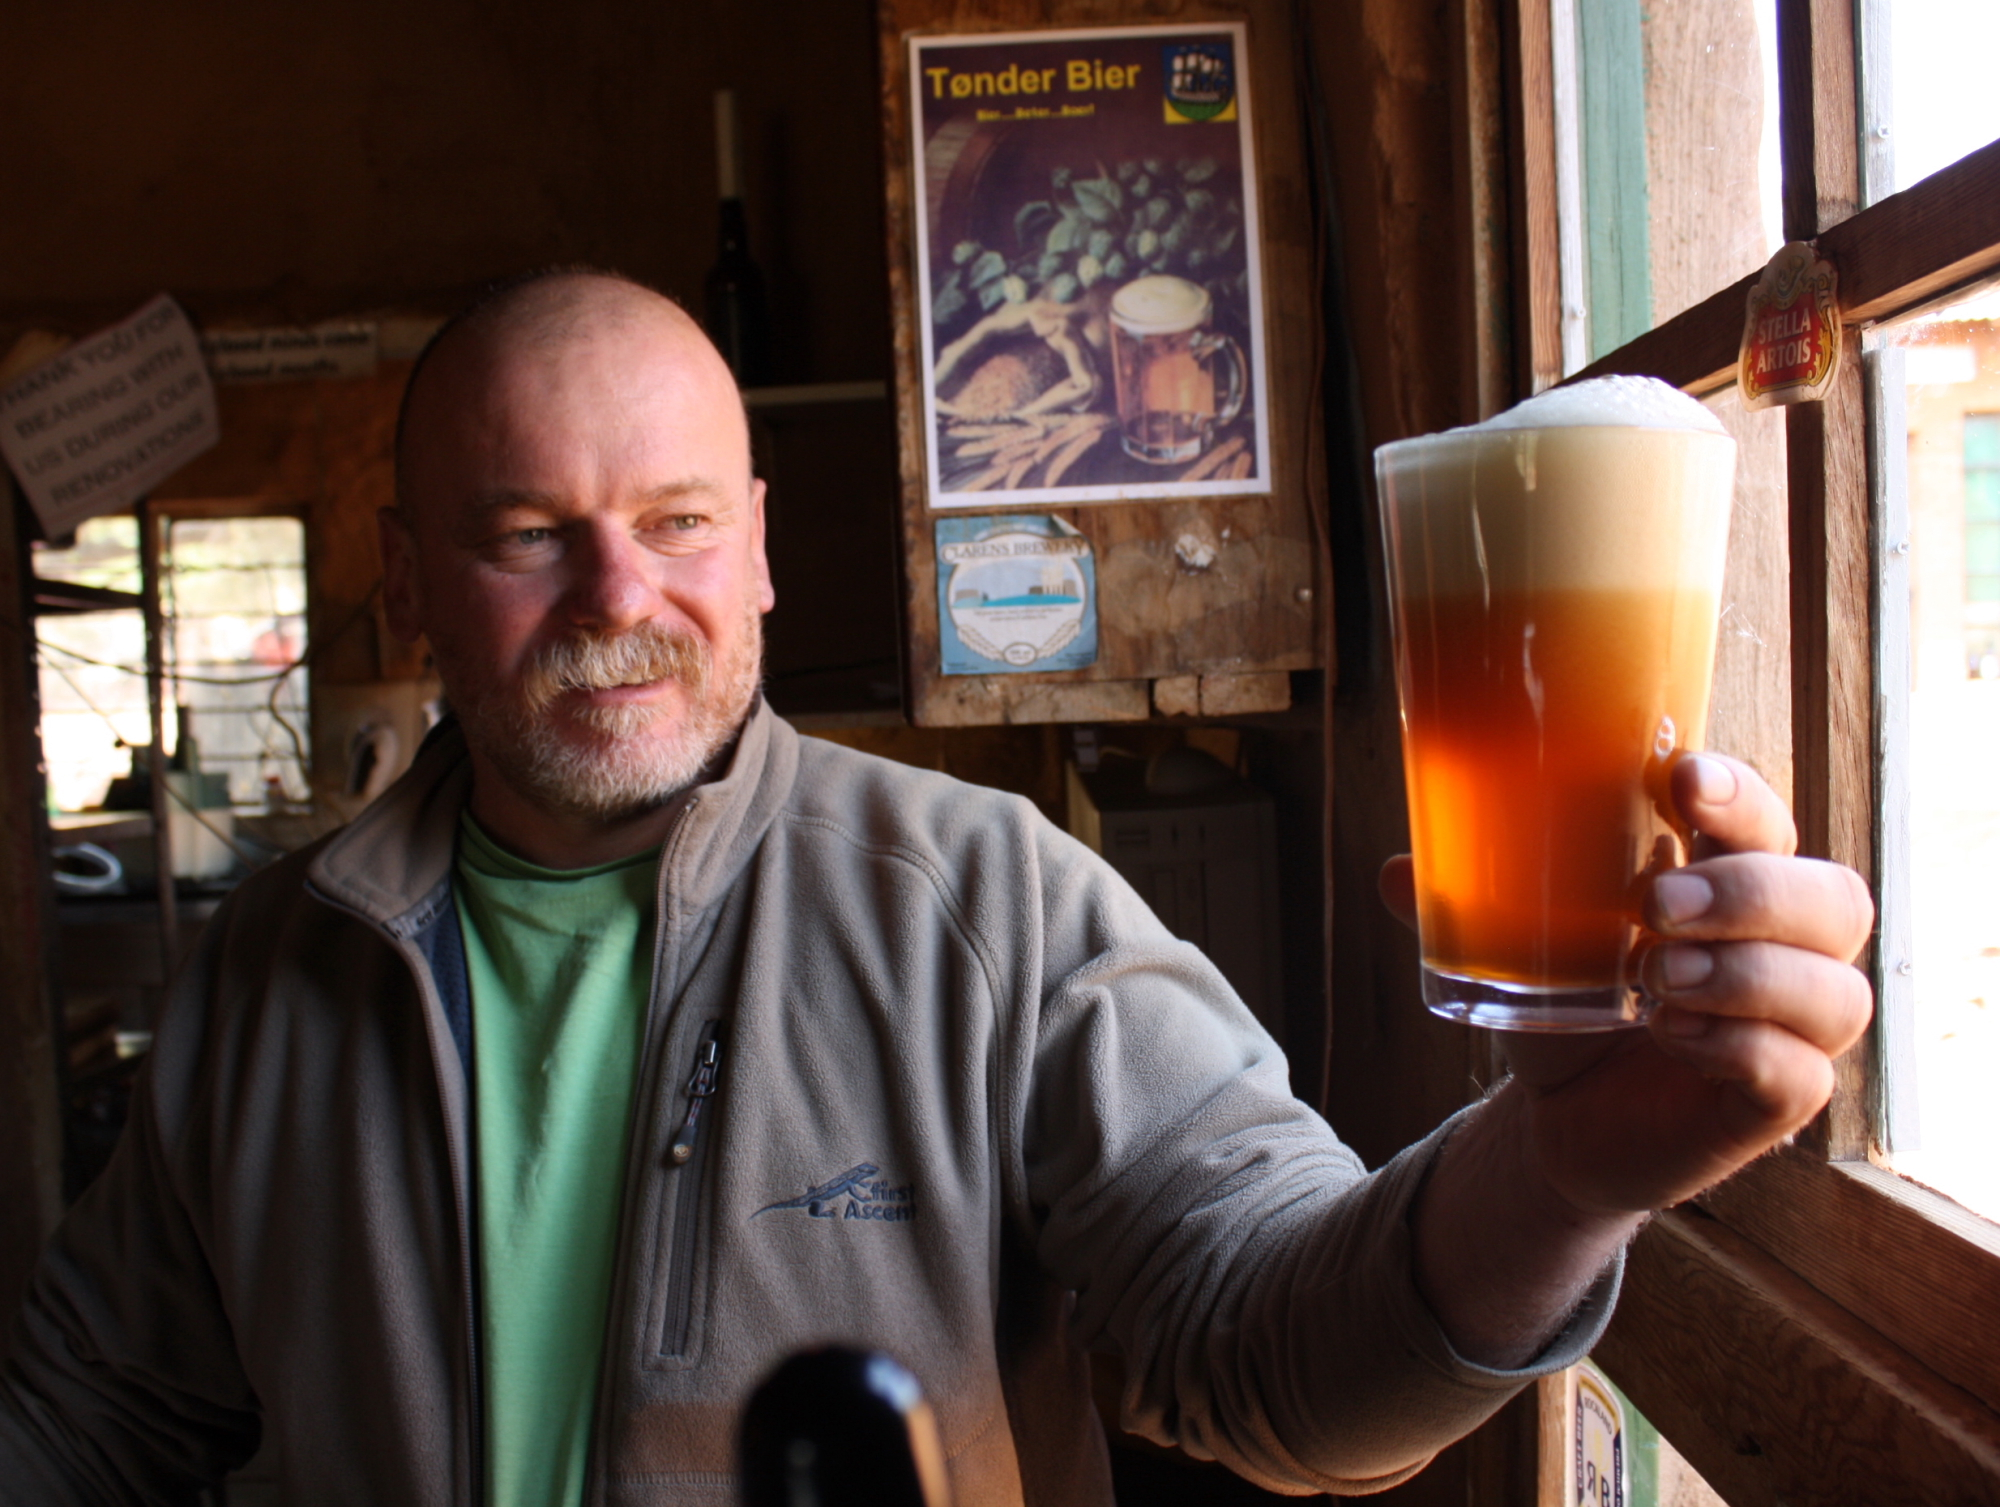 """Microbrewer Dirk van Tonder says consumers are attracted to craft beers because the products always have """"interesting stories"""" behind them. (Photo Credit: Darren Taylor)"""